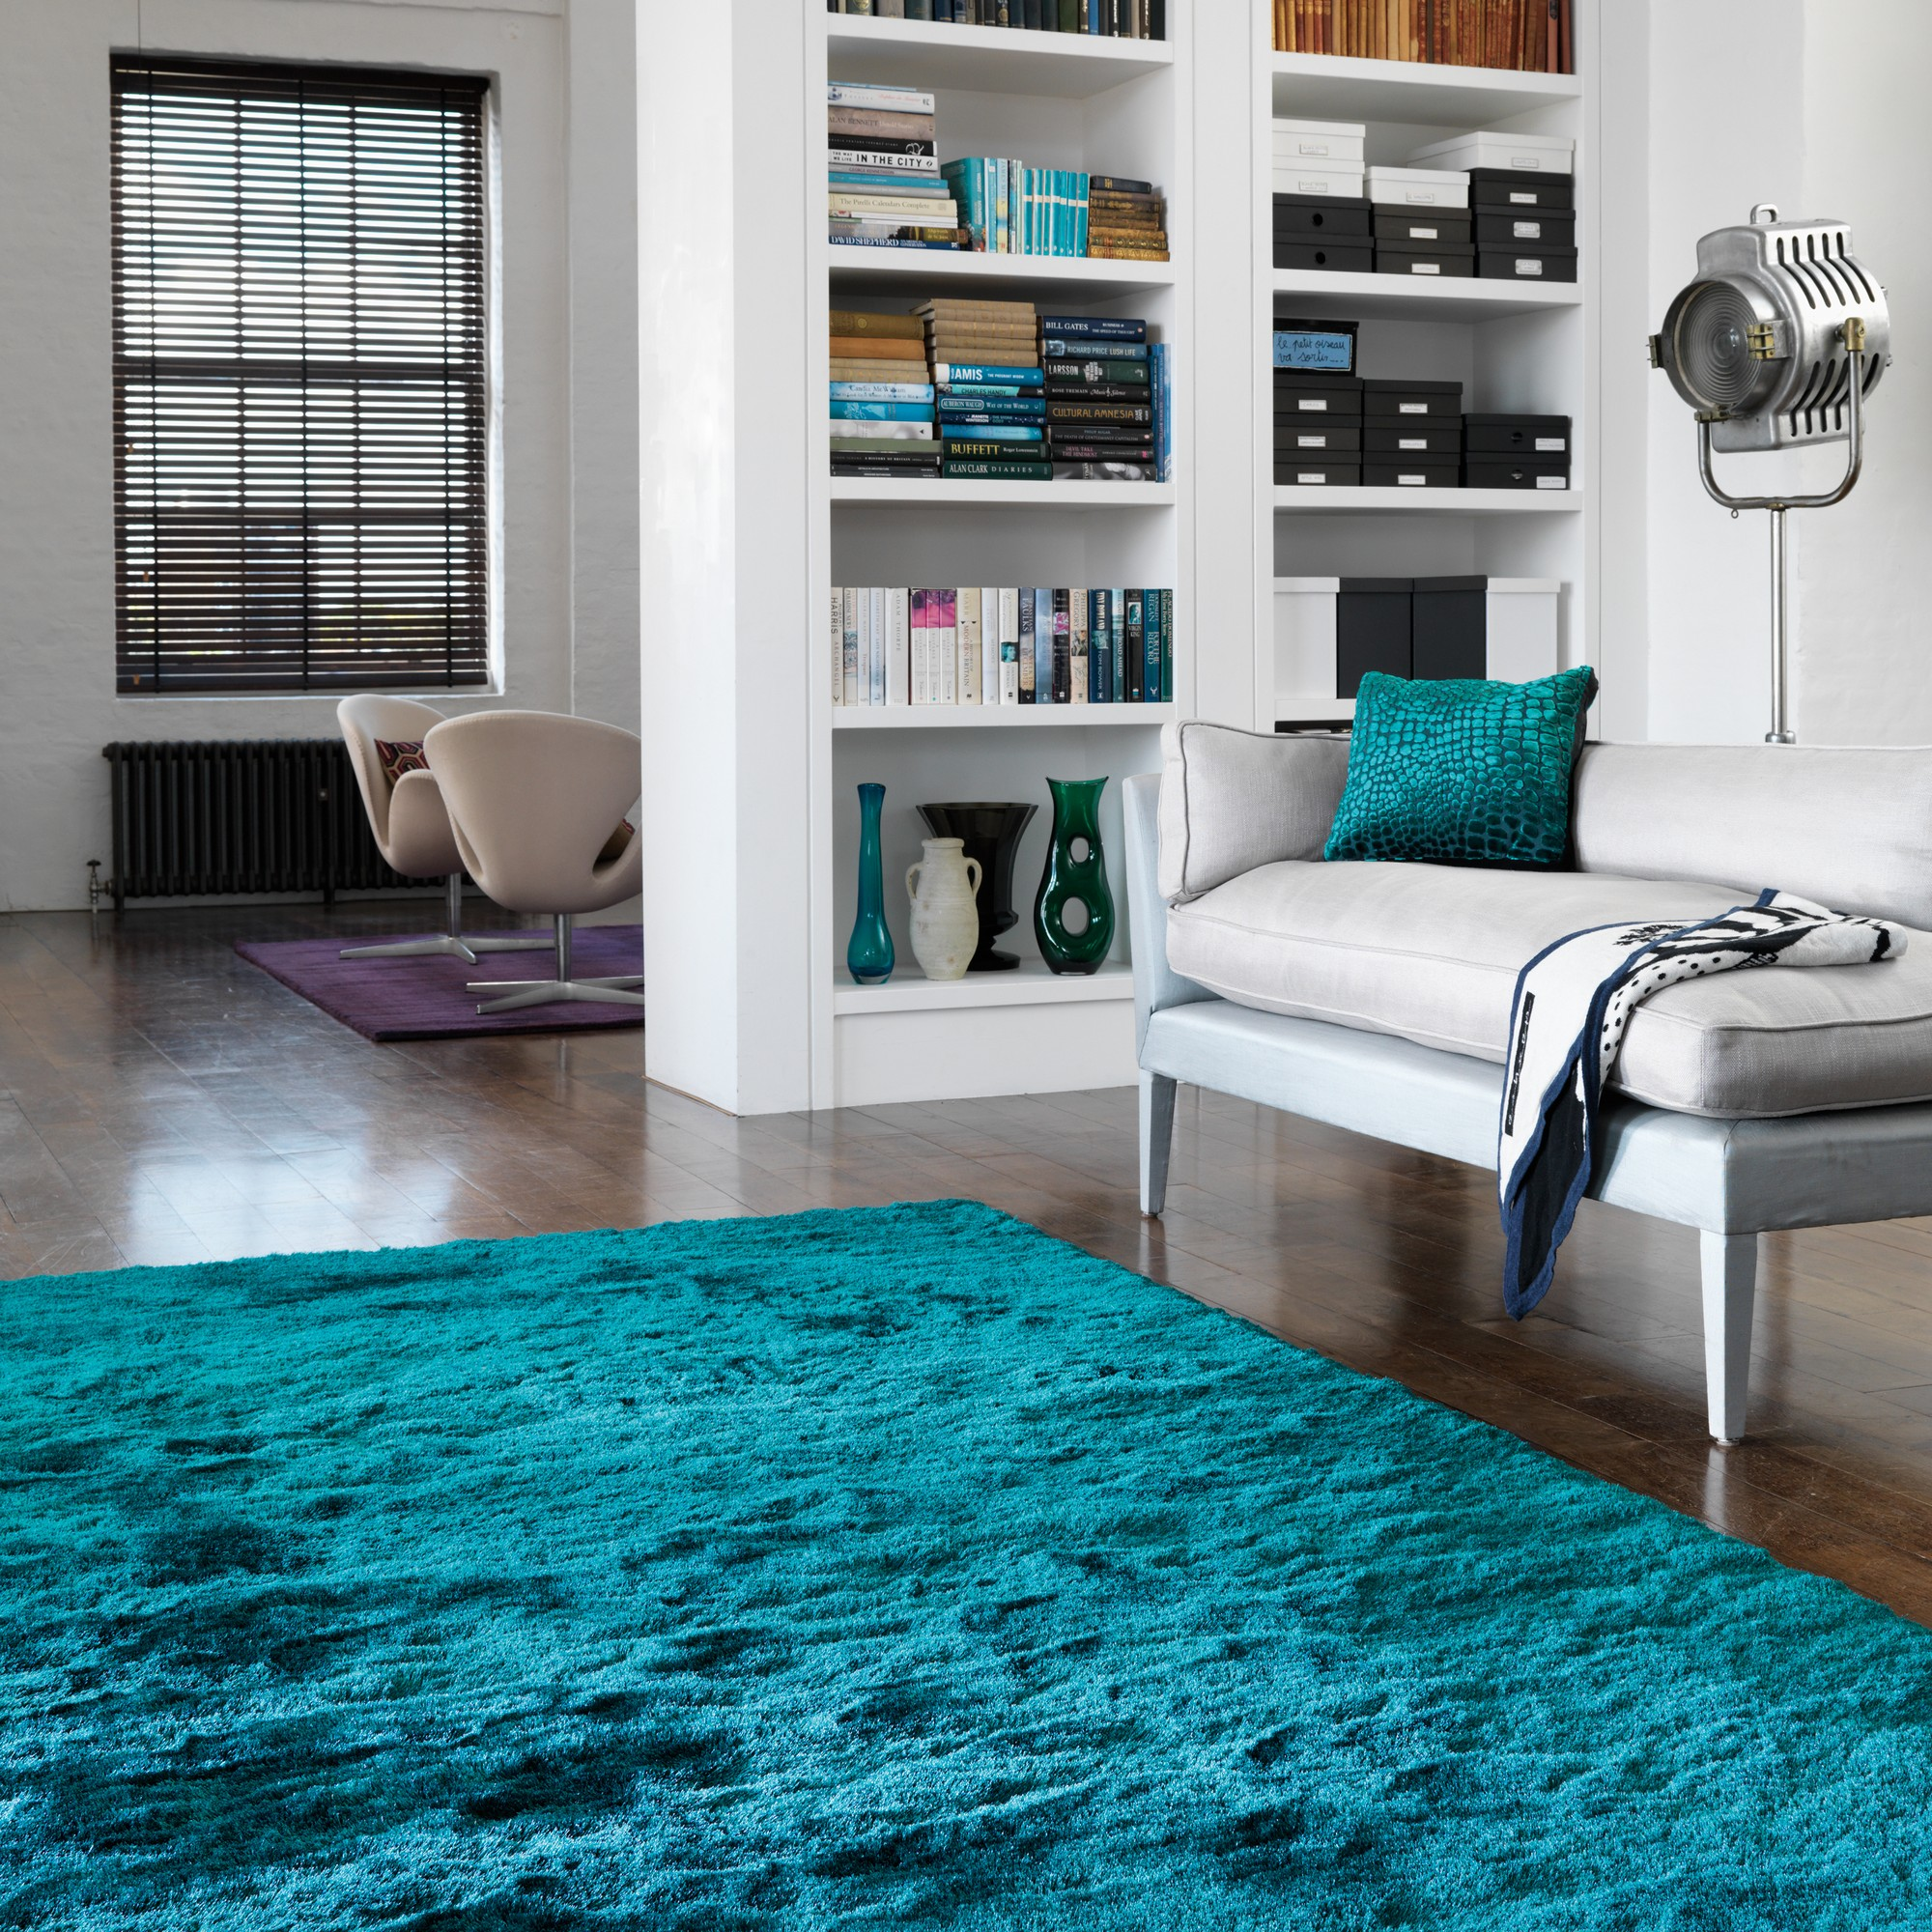 Whisper Shiney Shaggy Rugs In Dark Teal Free Uk Delivery